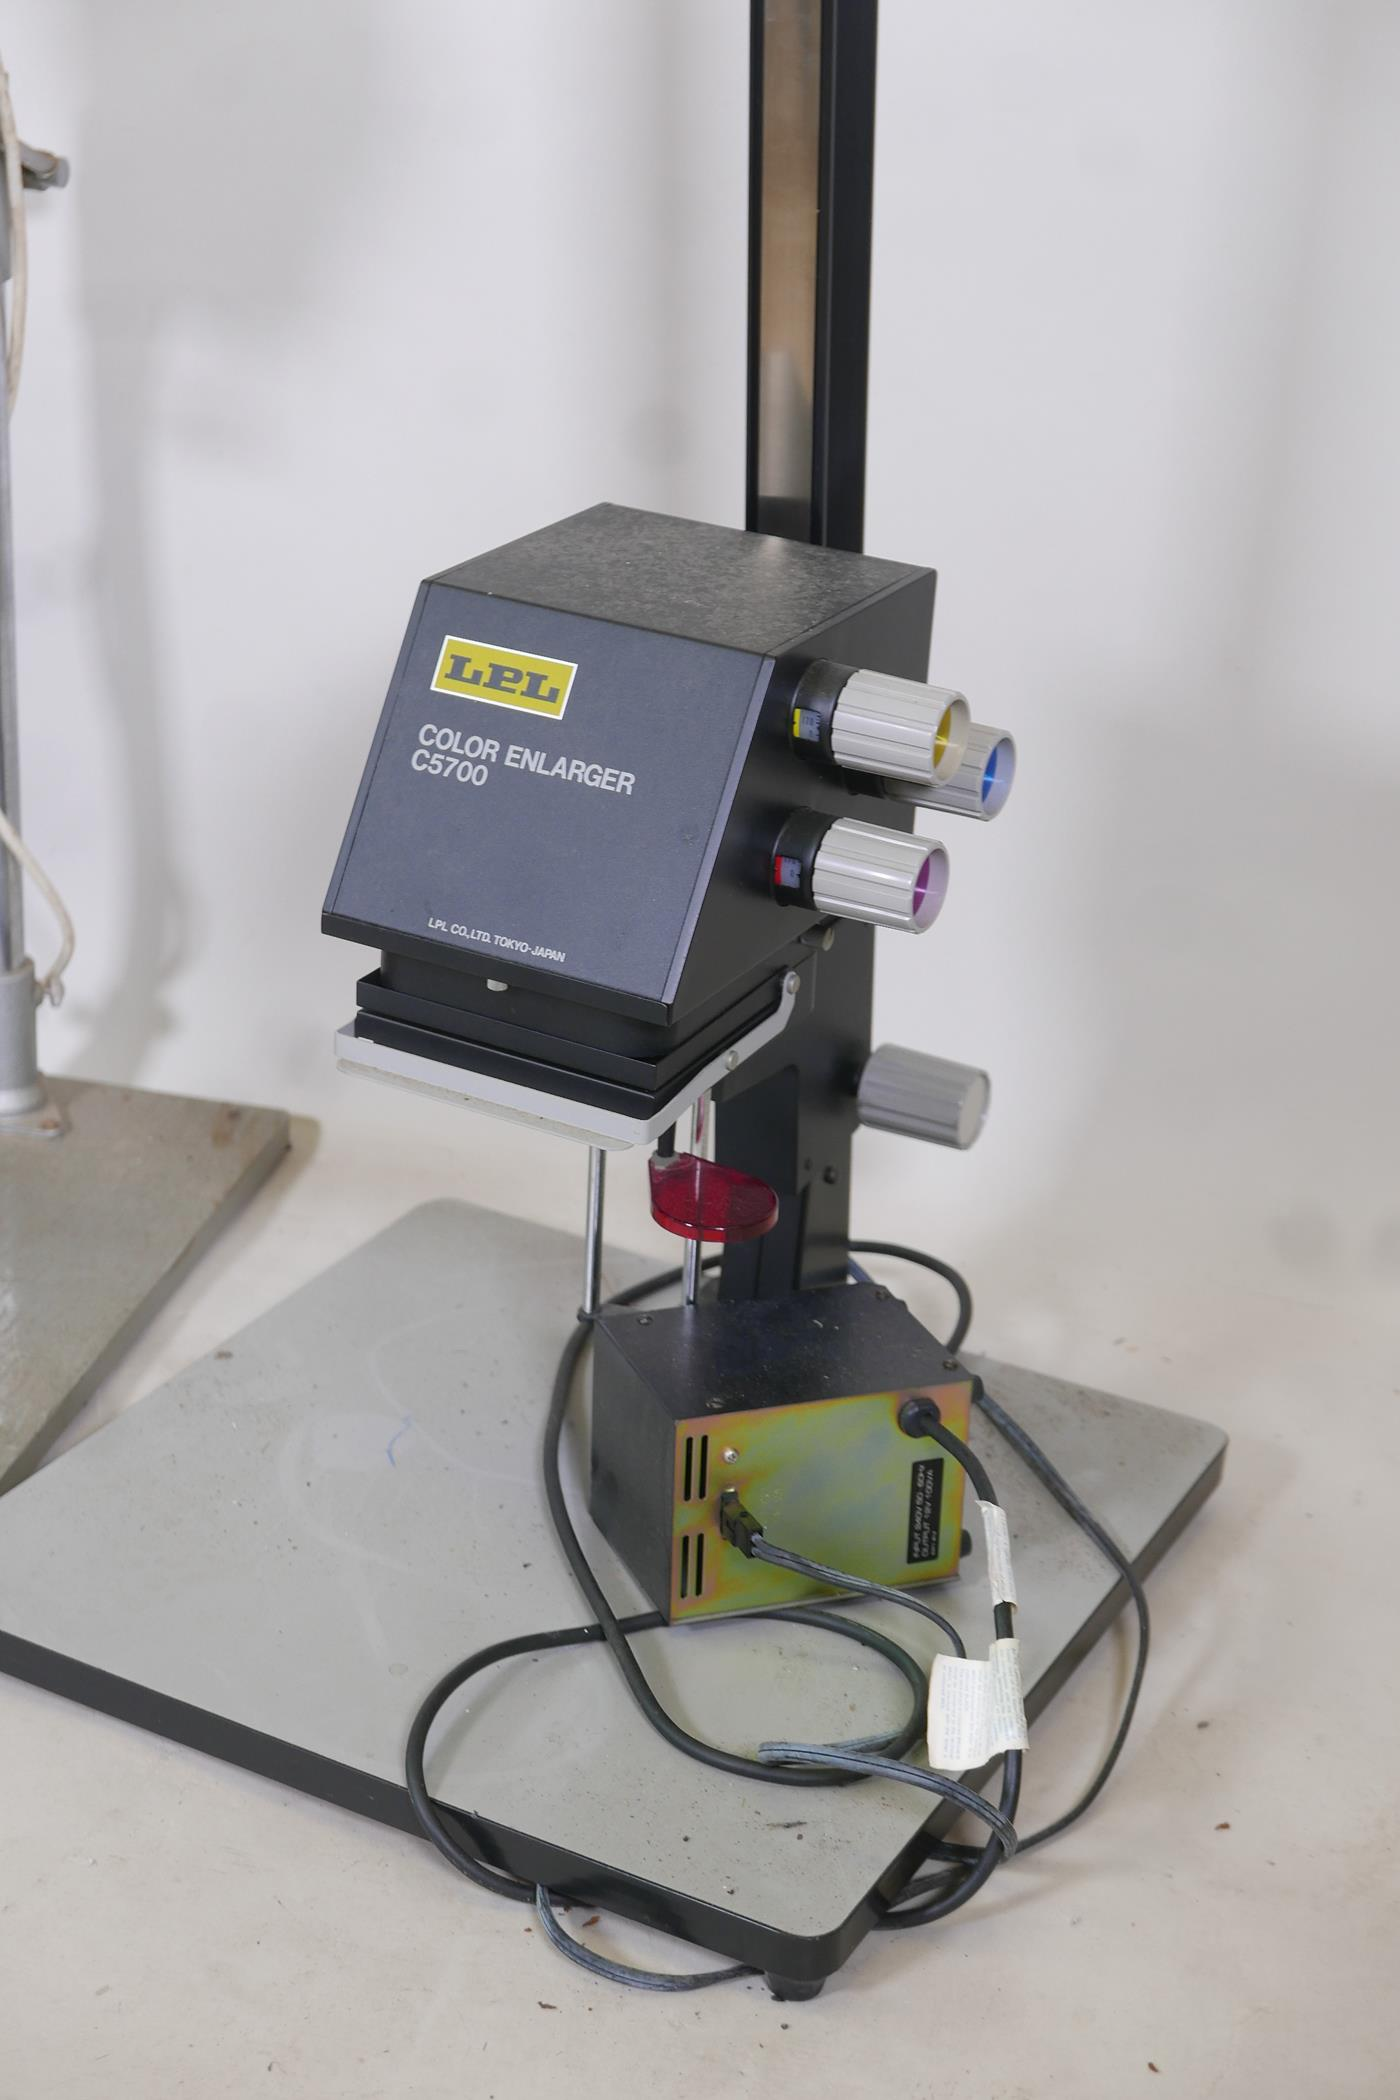 A Gamma 35 photographic enlarger, a LPL C5700 colour enlarger and another with timer - Image 2 of 3